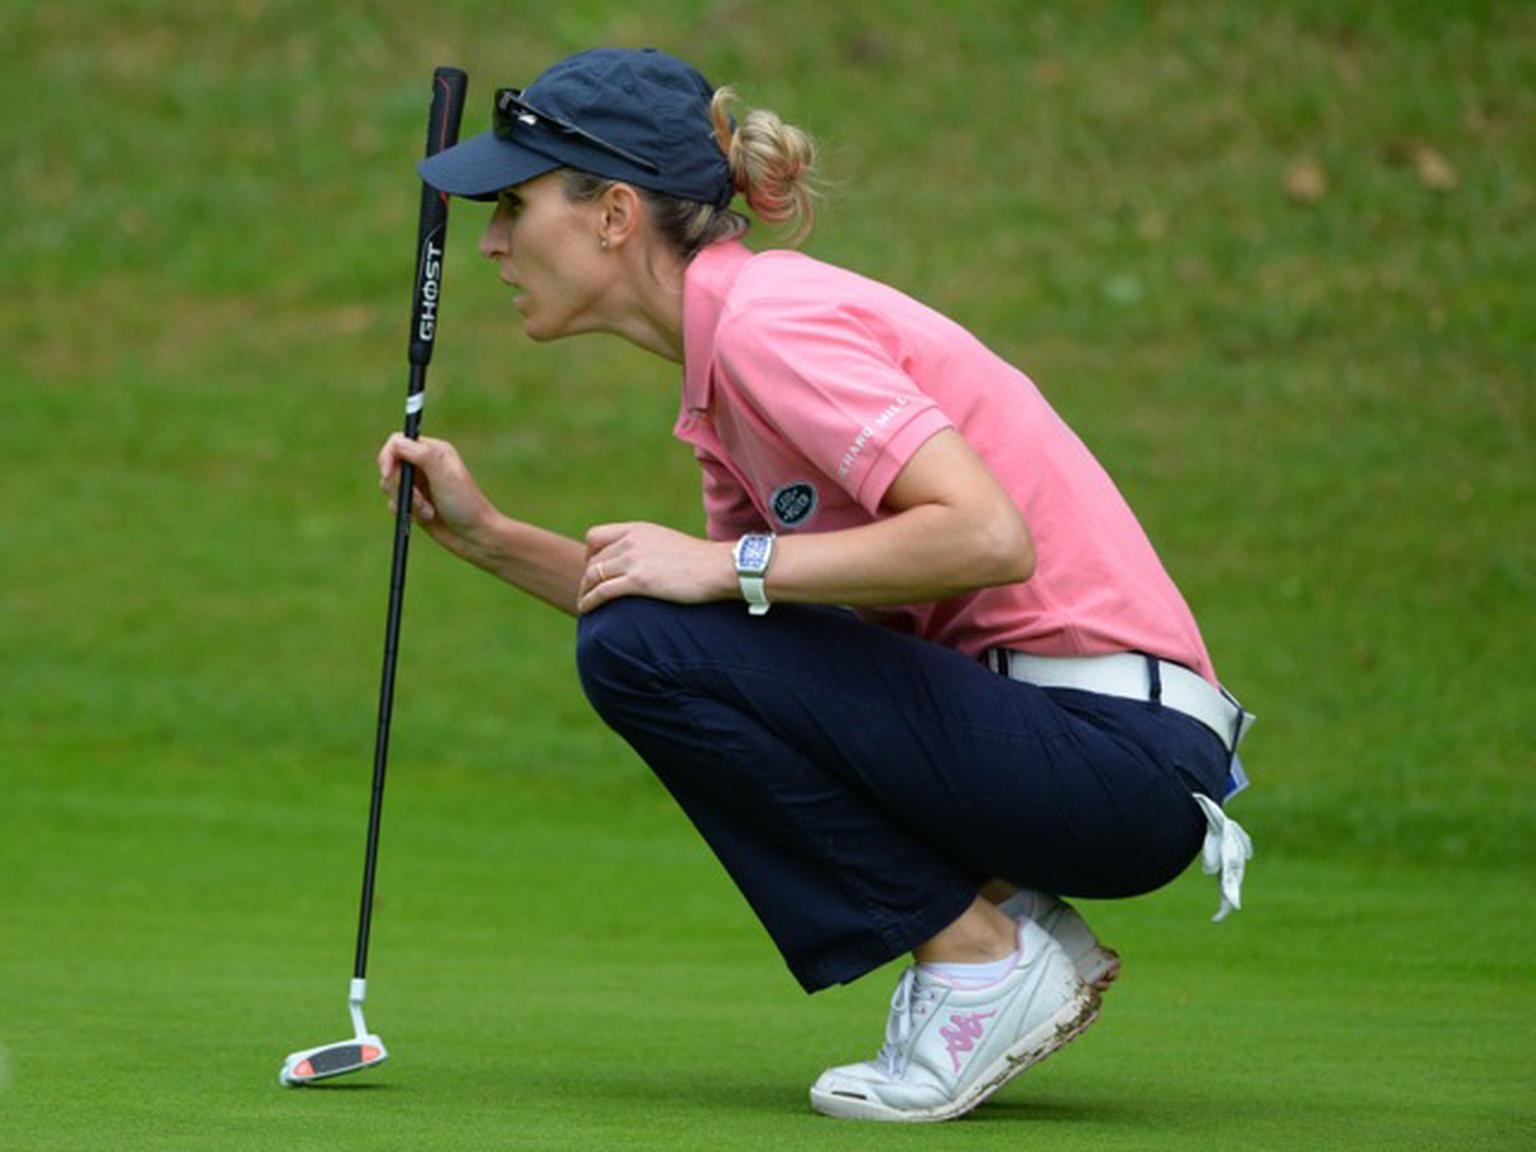 Italian professional golfer Diana Luna on the green wearing her Richard Mille RM 007 Titanium watch.